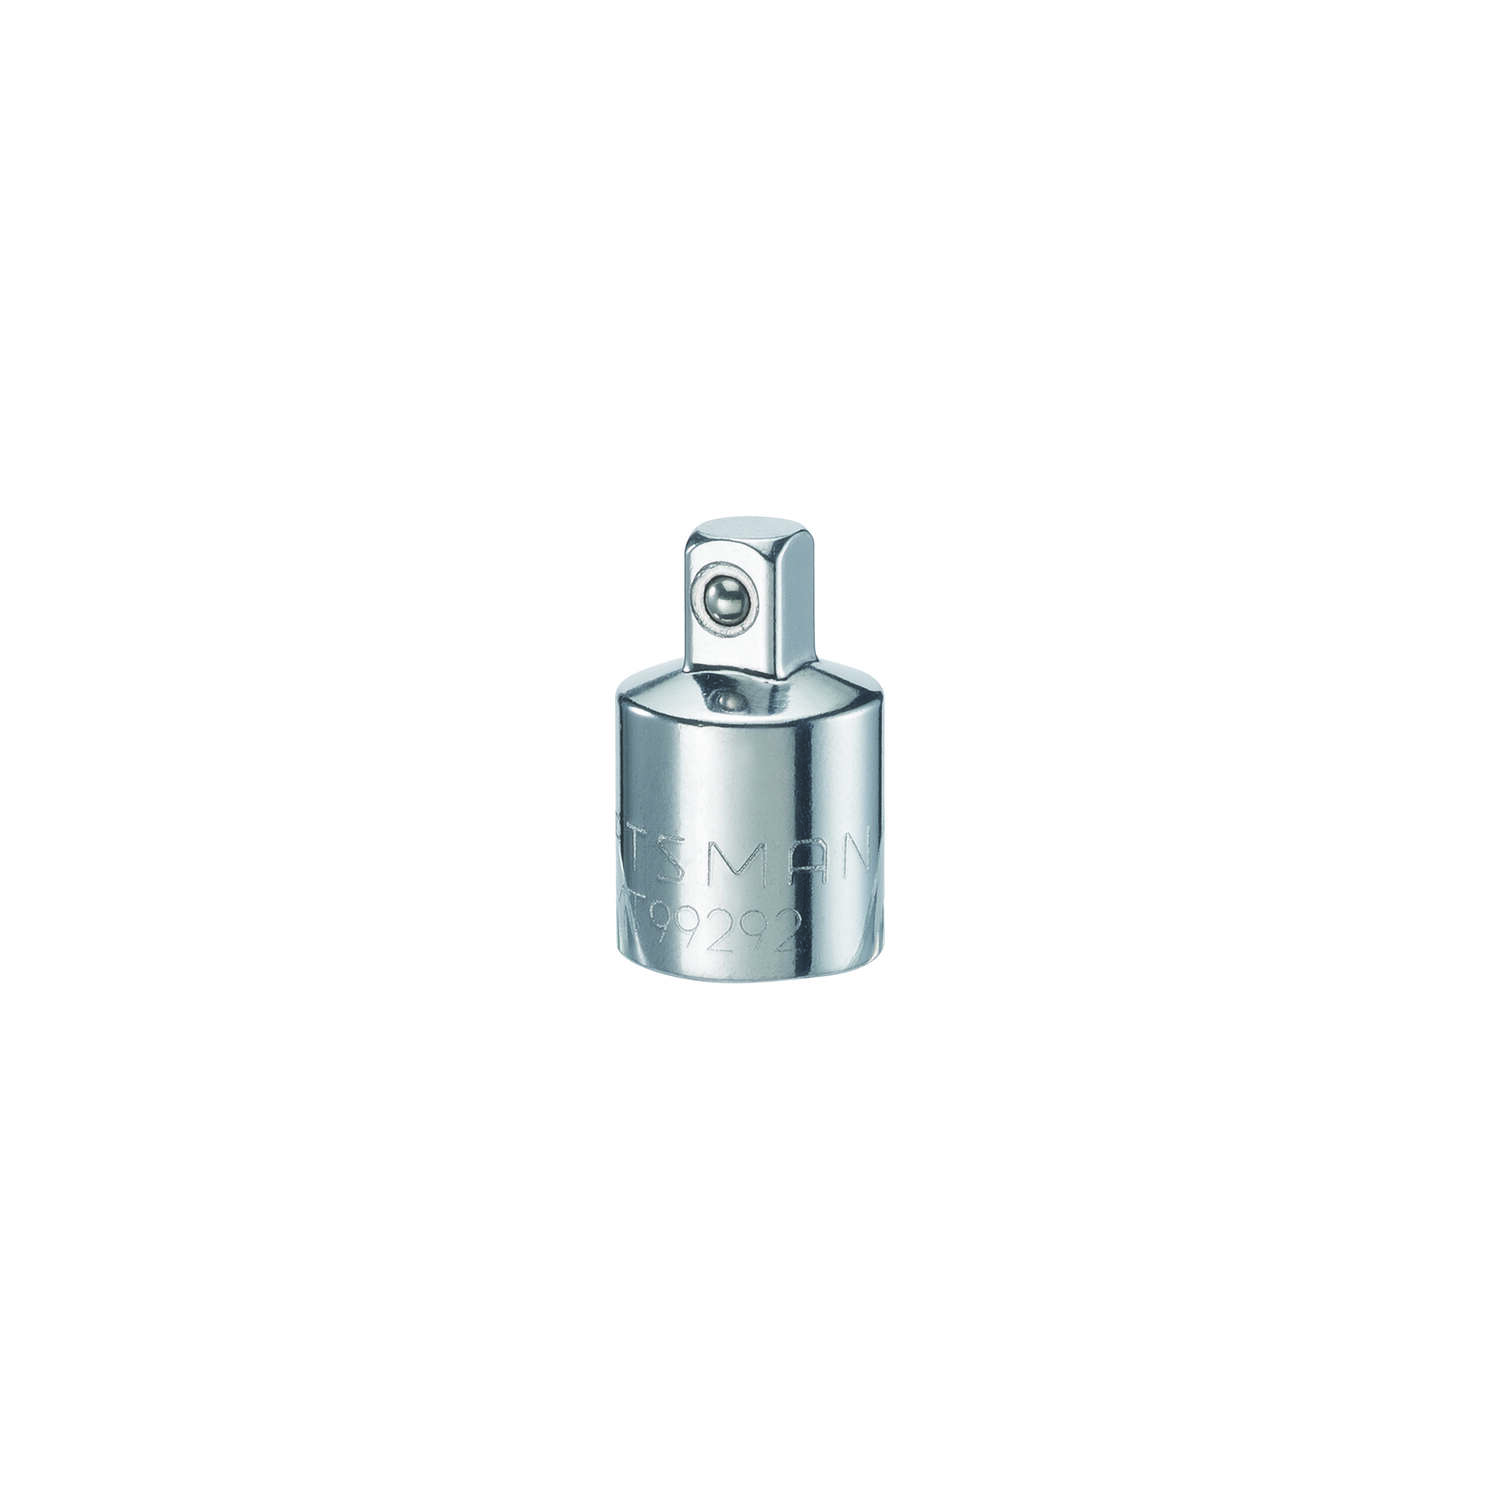 Craftsman 3/8 in. L x 1/4 and 3/8 in. SAE Socket Adapter 1 pc.